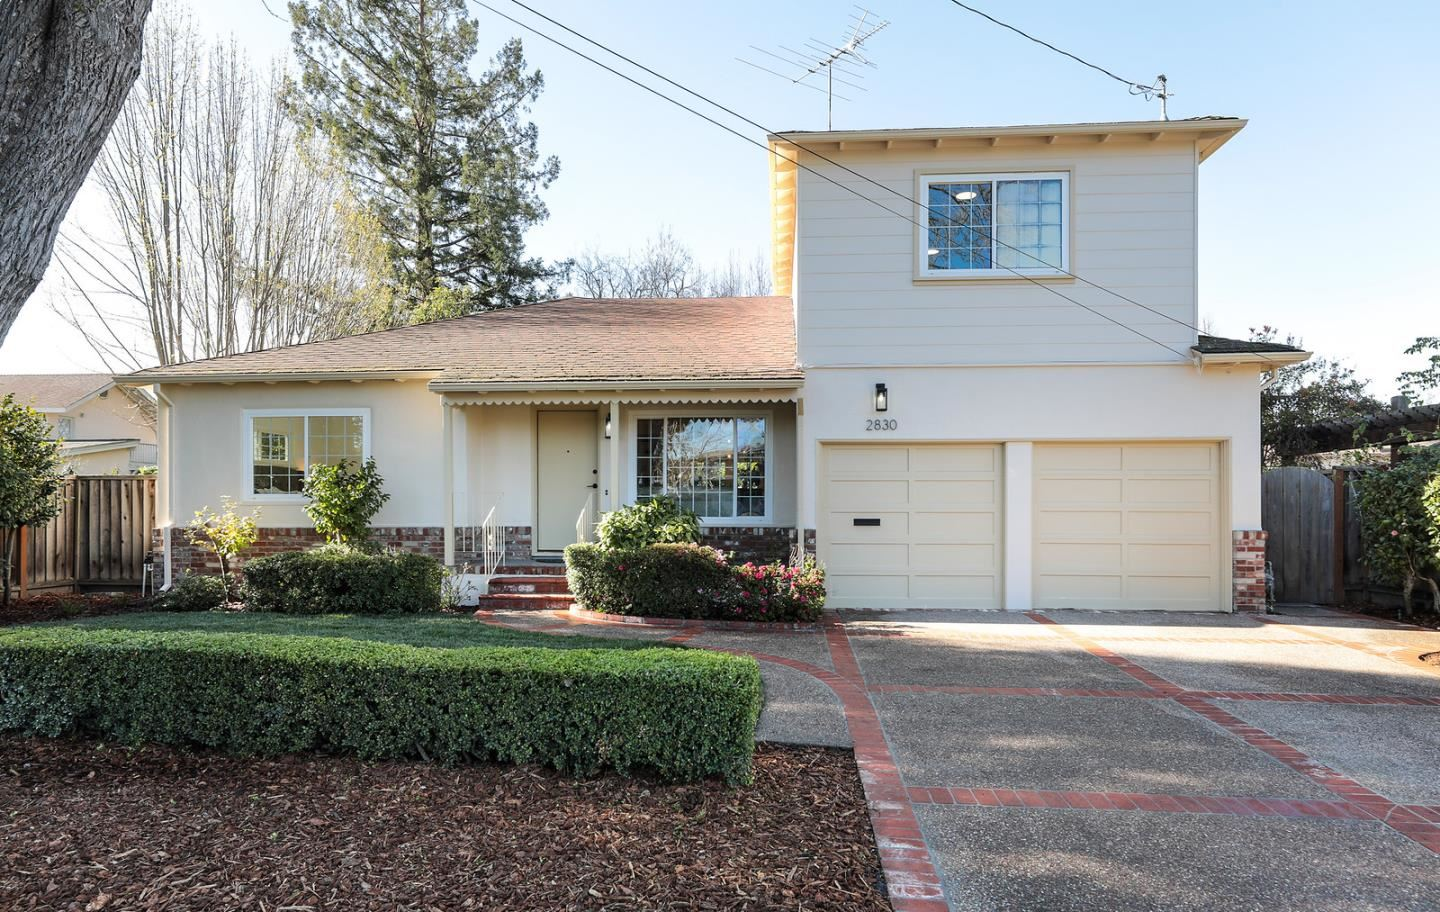 Photo for 2830 Ross RD, PALO ALTO, CA 94303 (MLS # ML81830465)